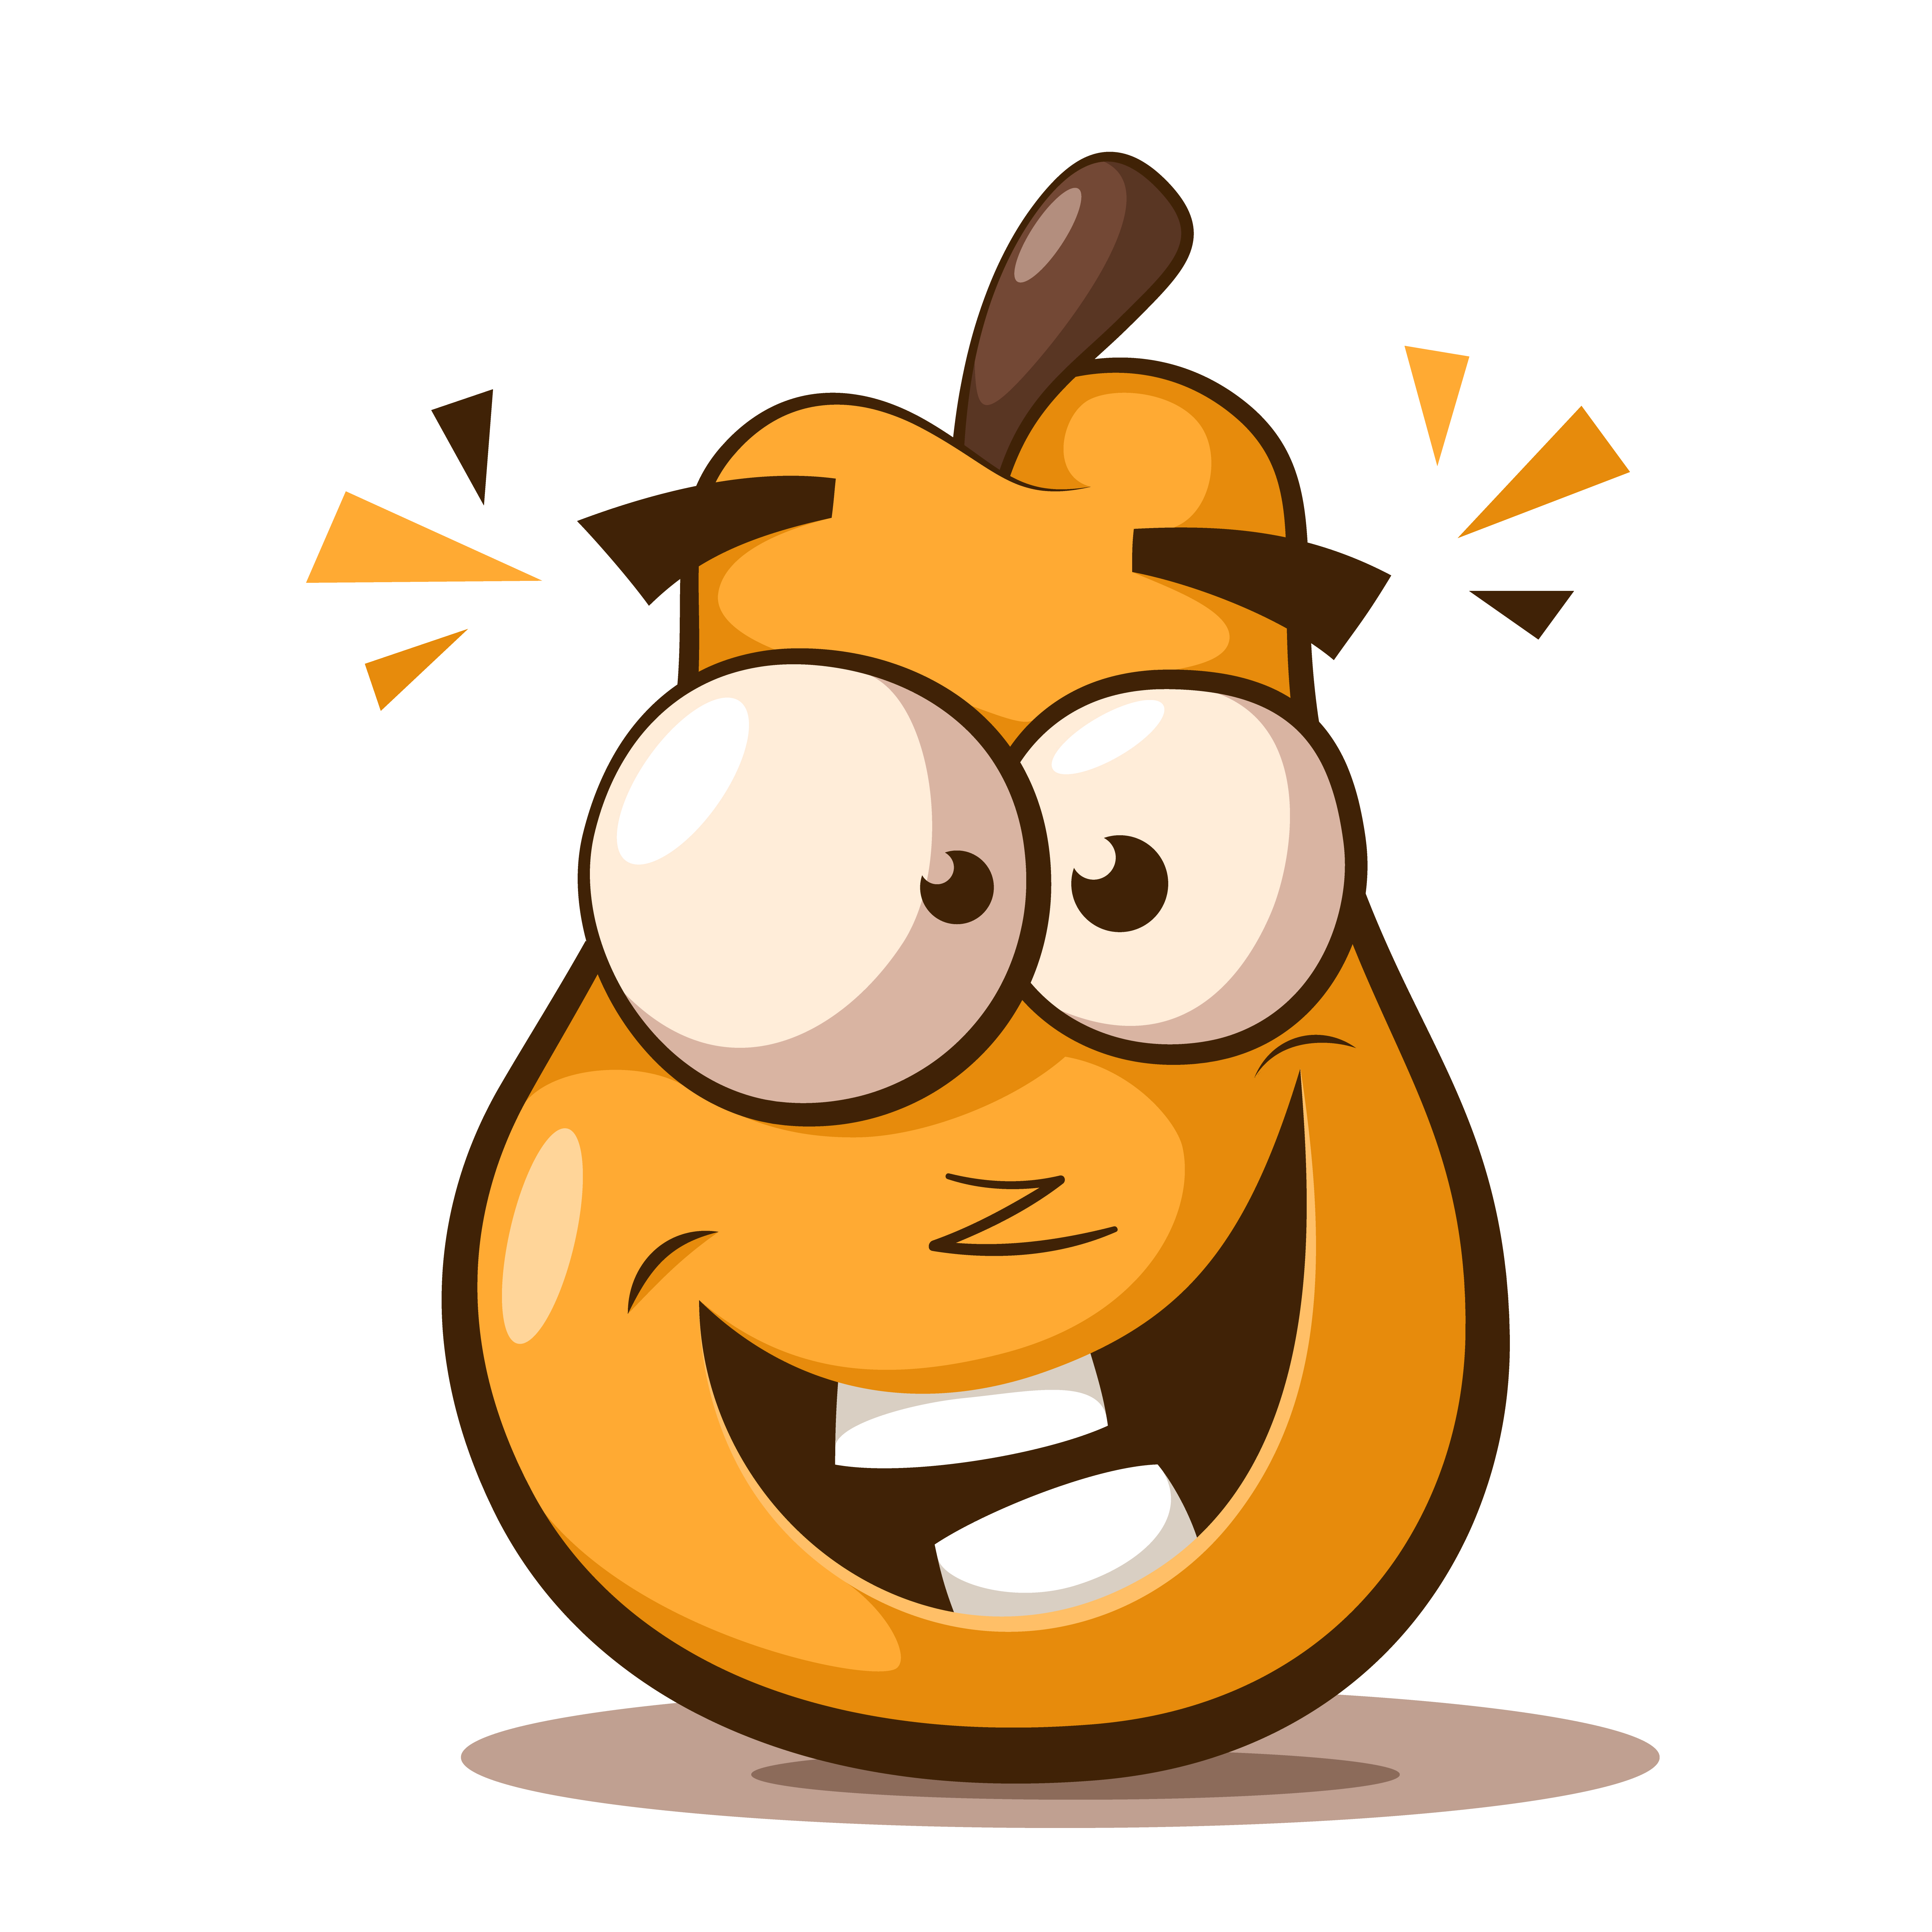 Cute, funny pear cartoon characters. - Download Free ...